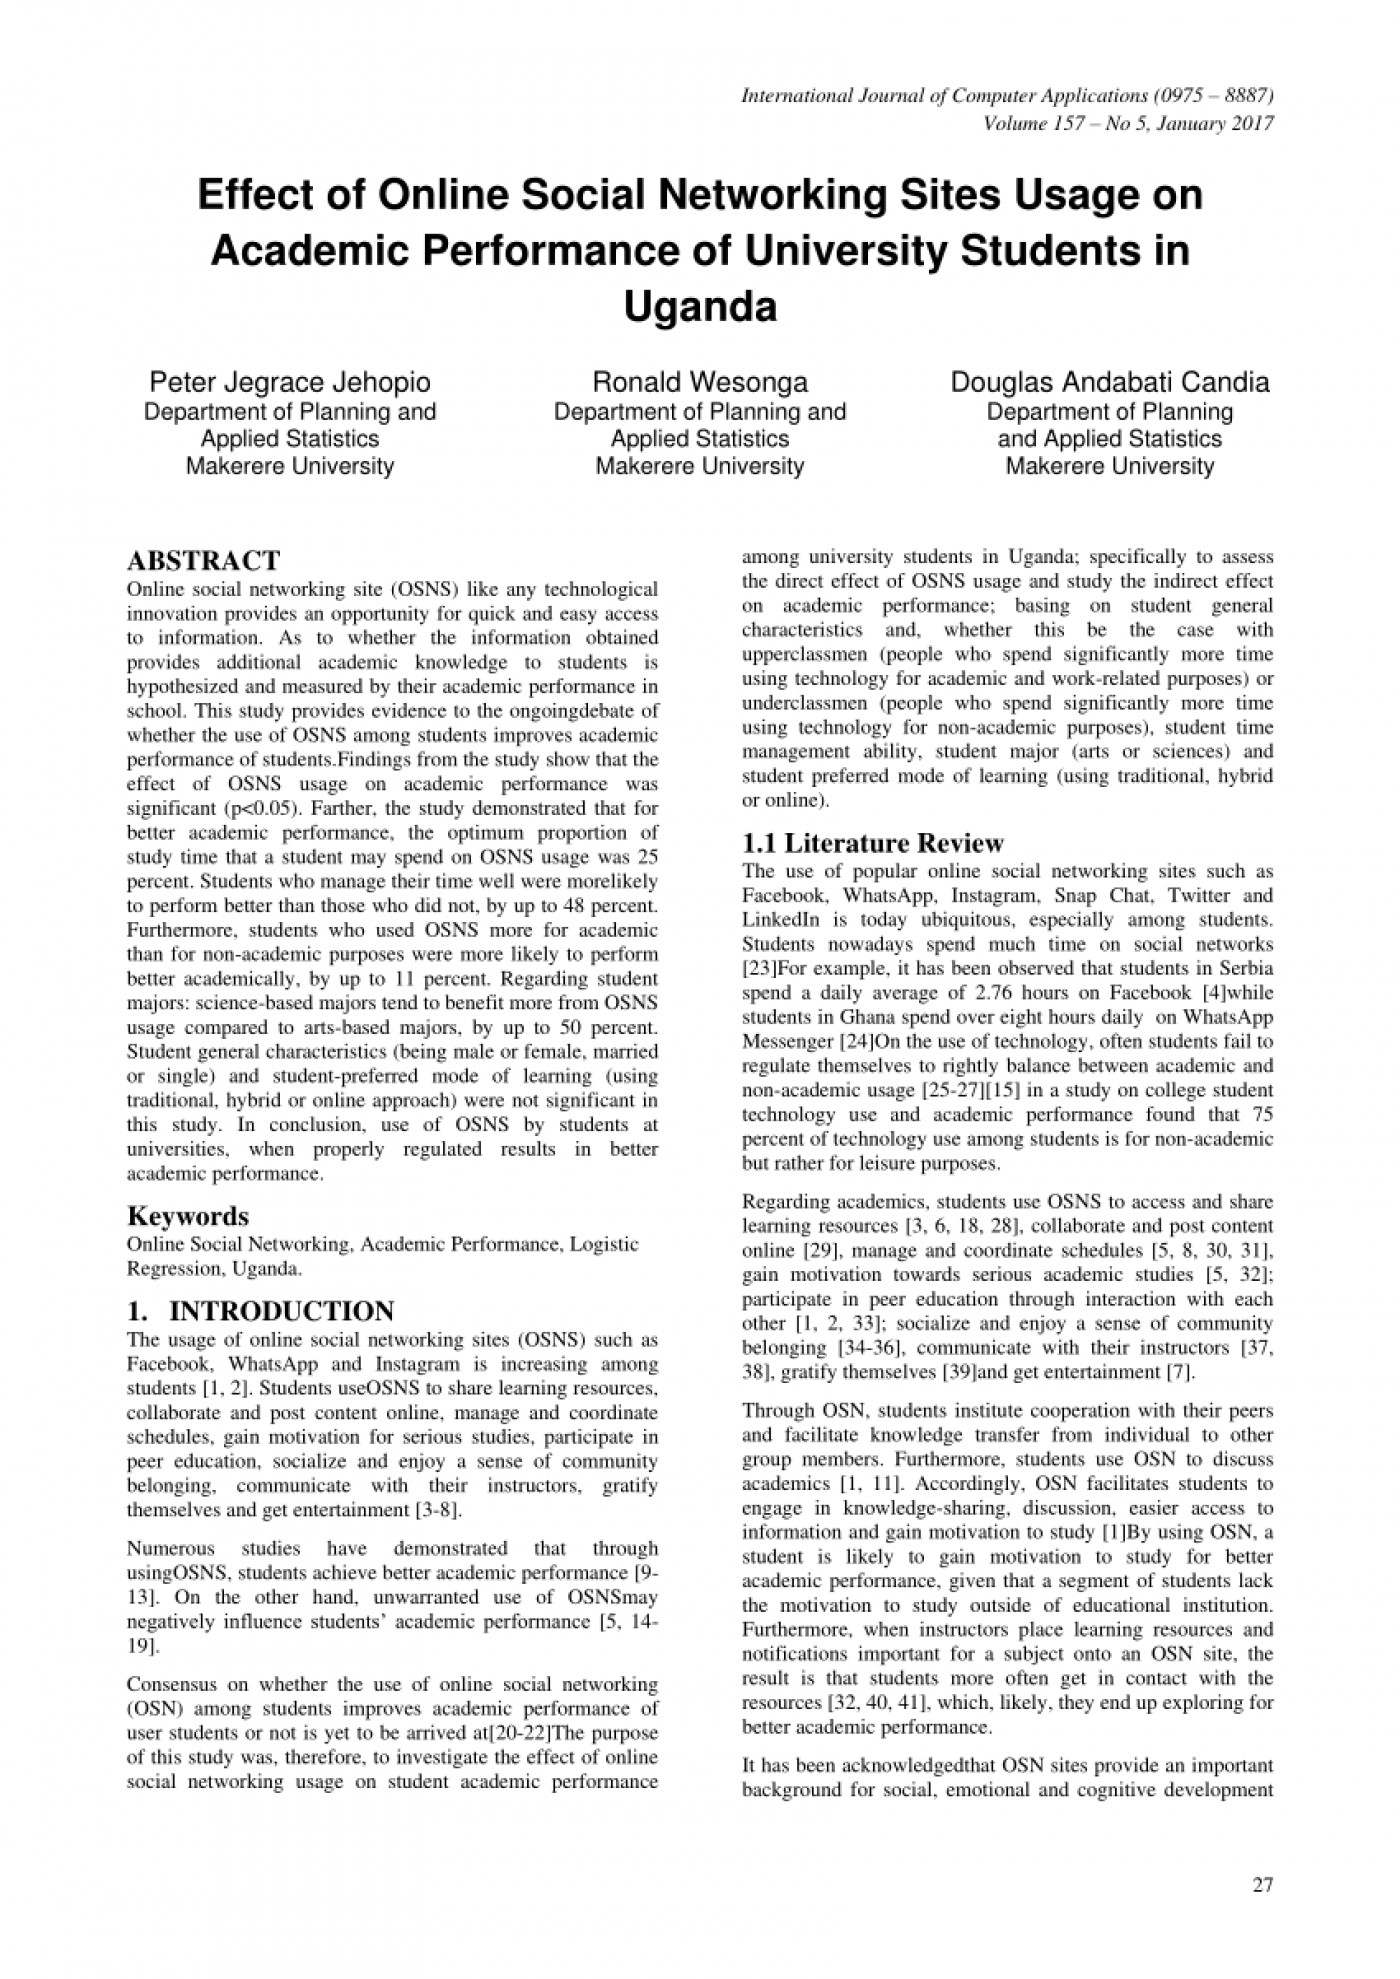 006 Conclusion For Research Paper About Social Media Awful 1400